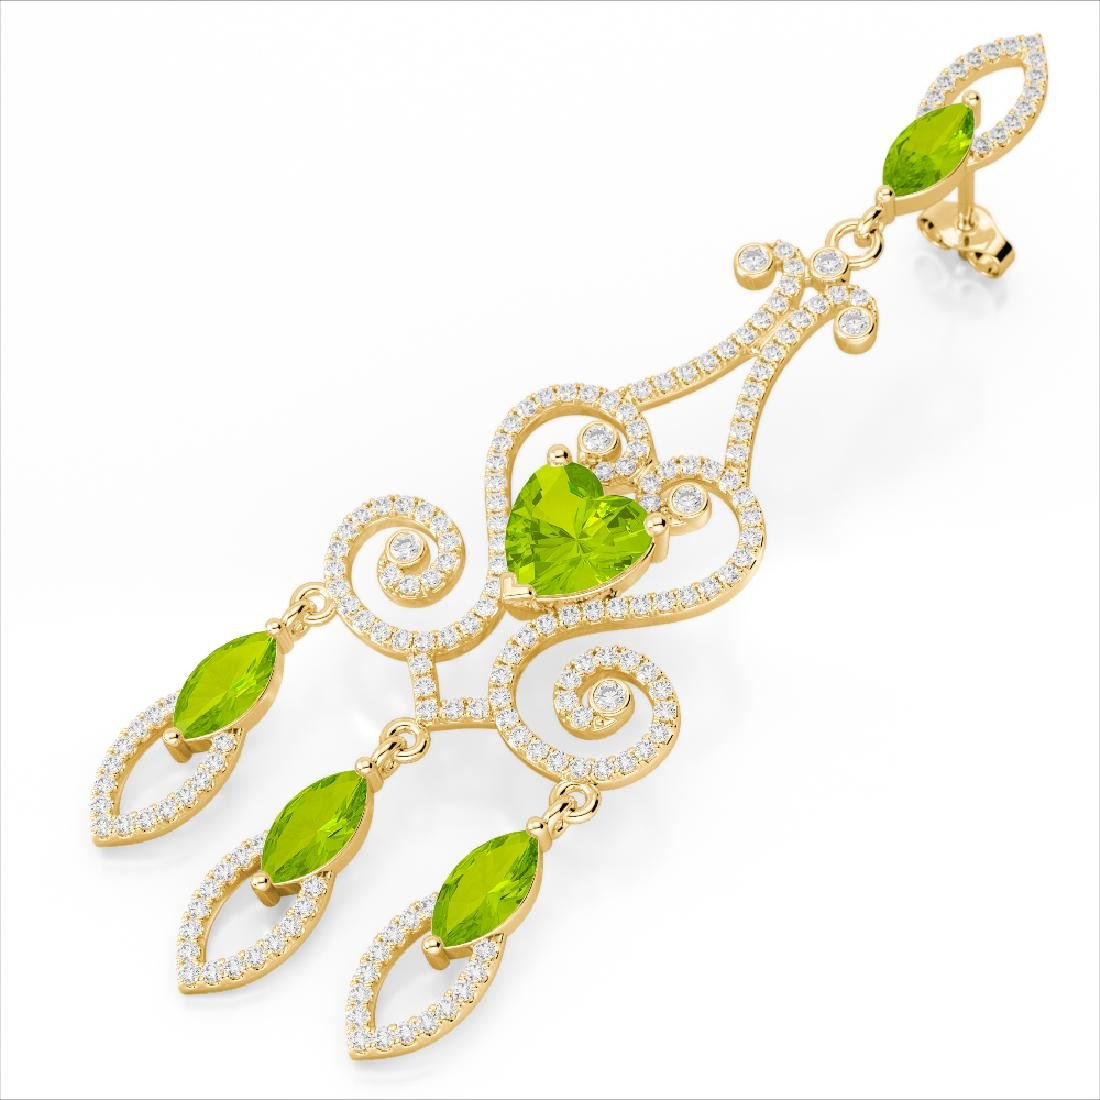 11 CTW Peridot & Micro Pave VS/SI Diamond Earrings 14K